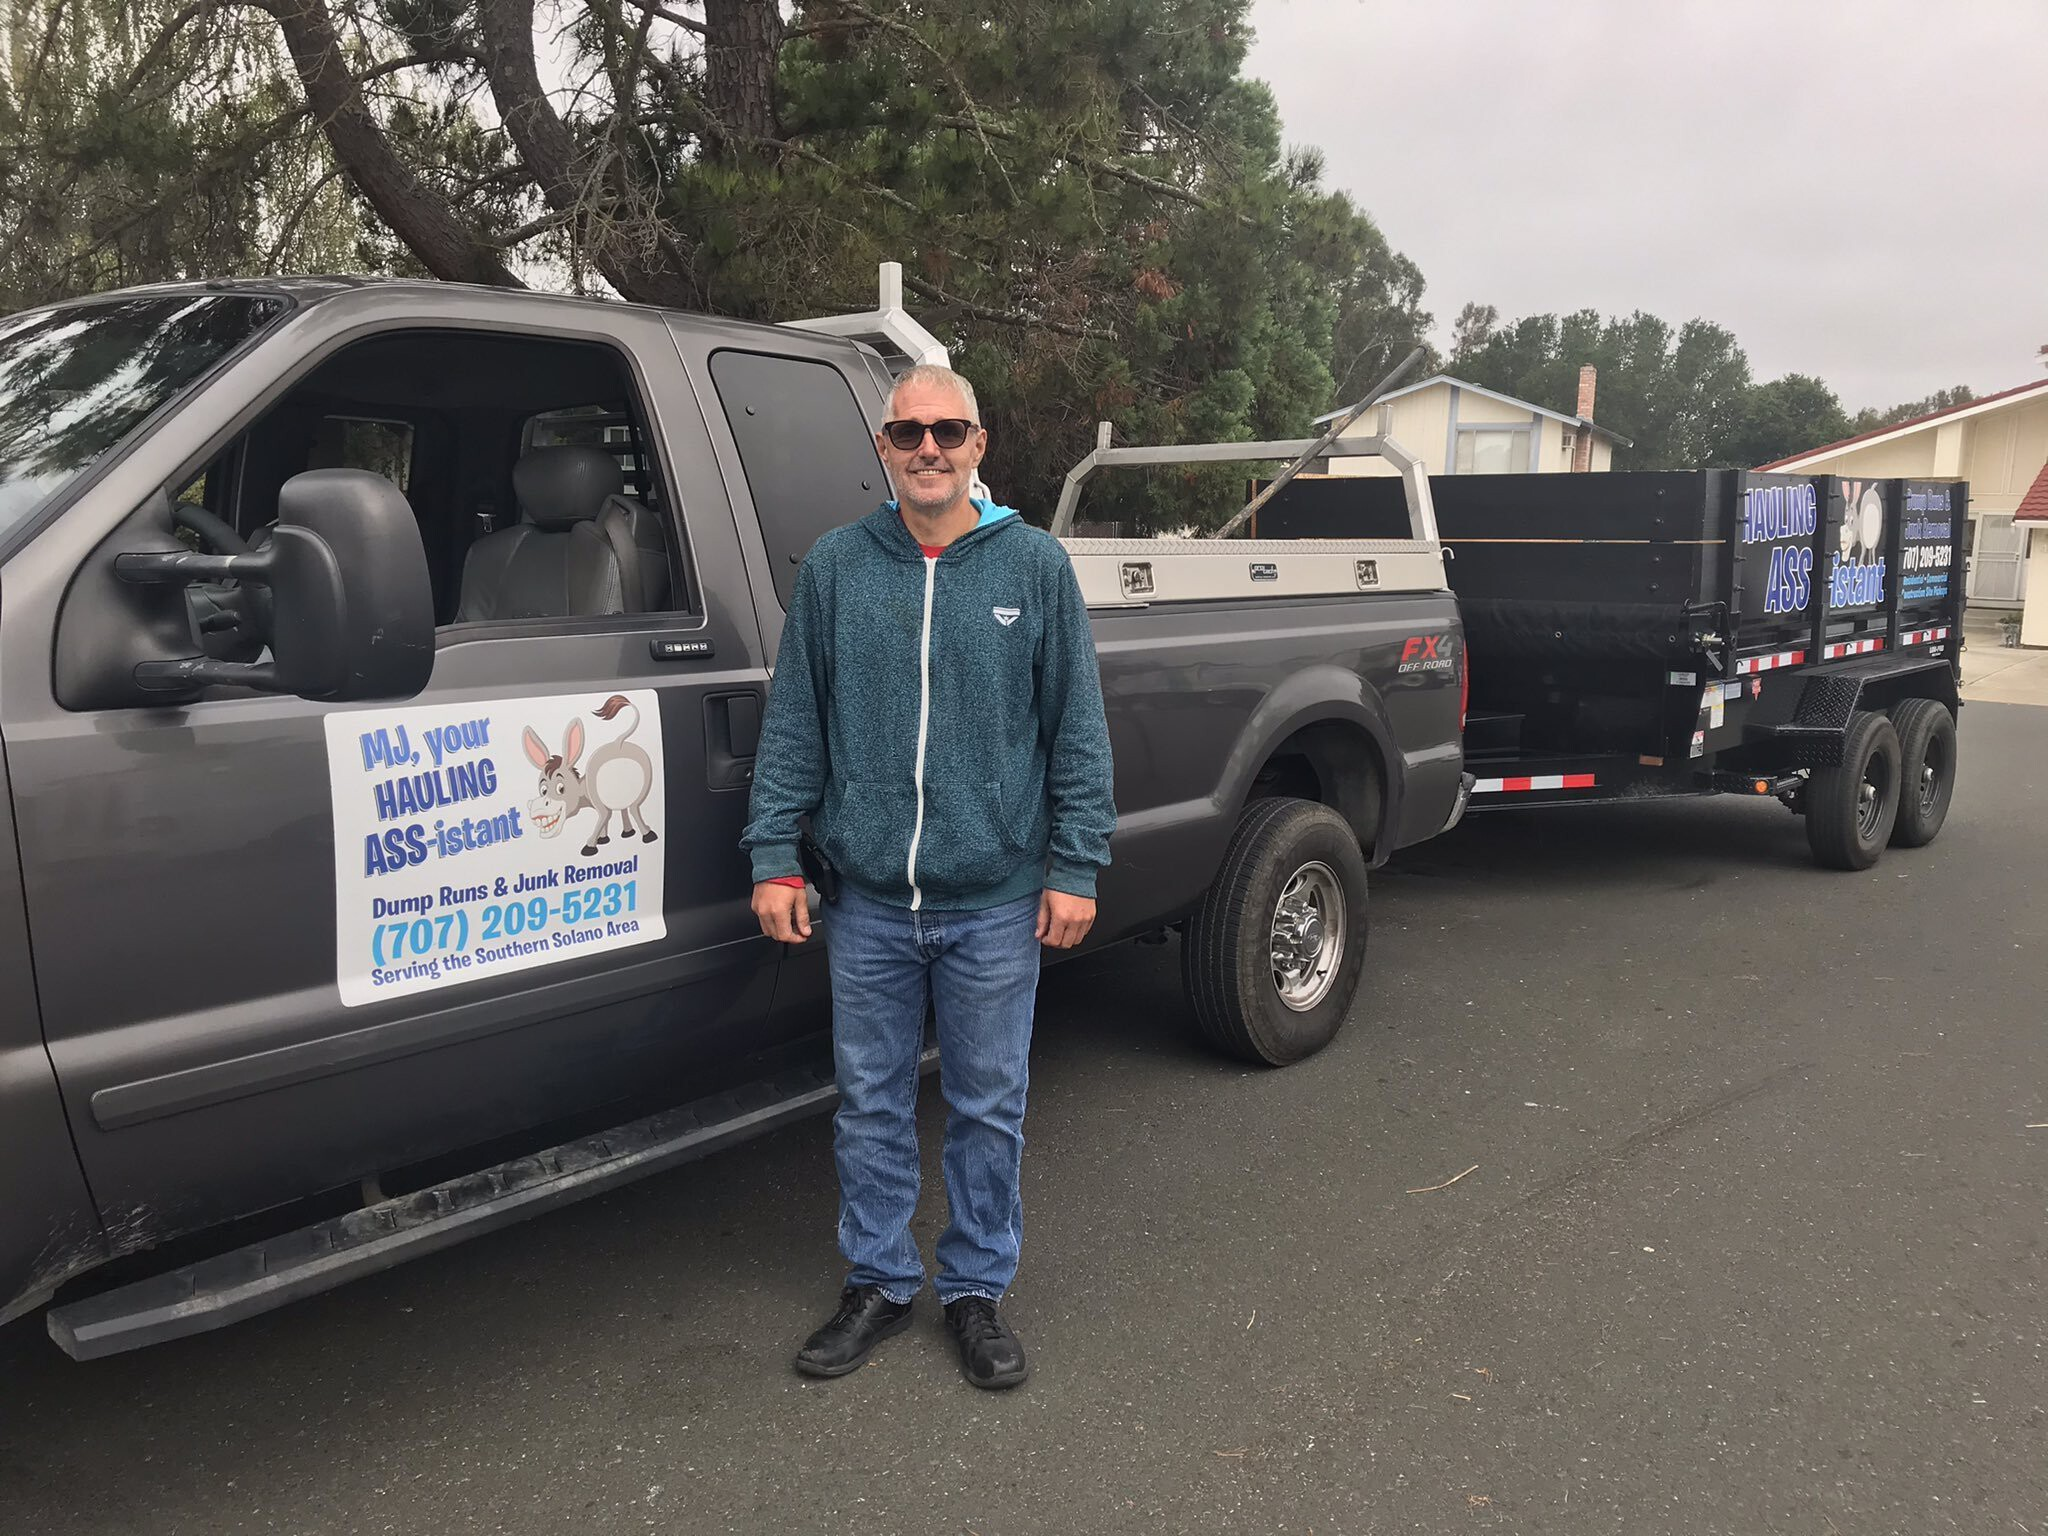 <i>KGO</i><br/>Mark Cutlip says his truck and trailer were stolen. He uses them for his new junk hauling business